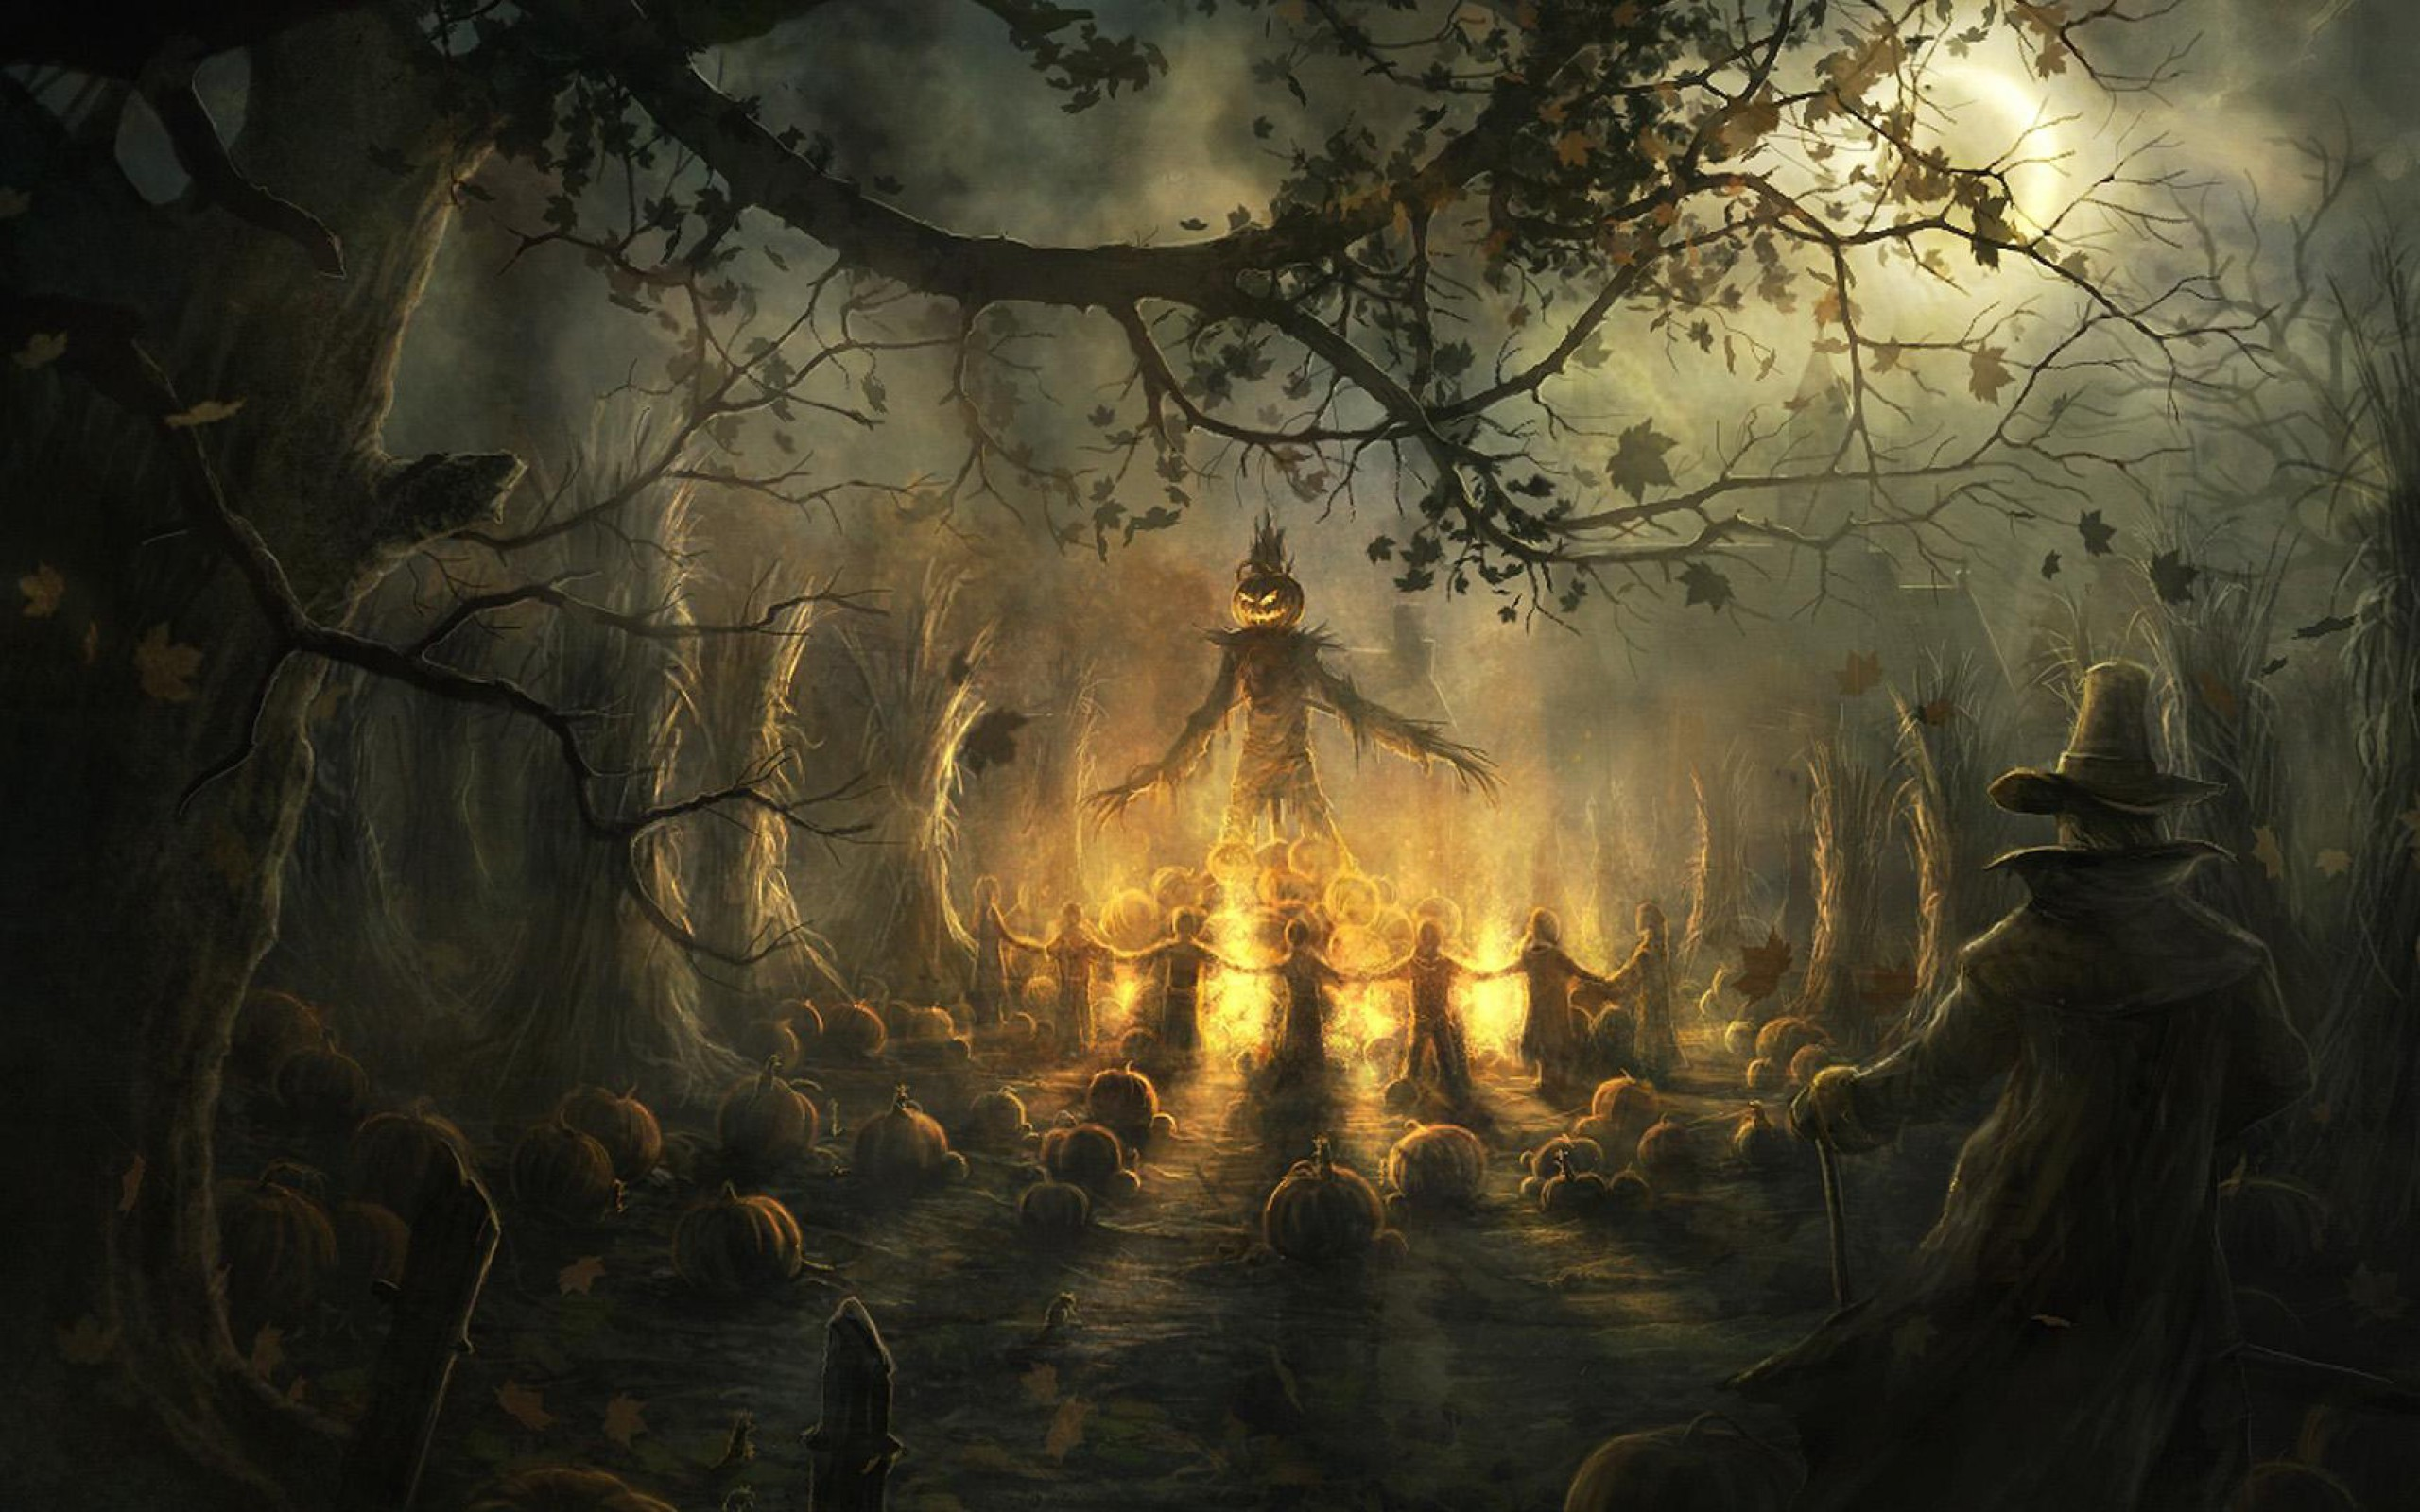 2560x1600 Halloween scarecrow wallpaper widescreen desktop mobile iphone android hd  wallpaper and desktop.